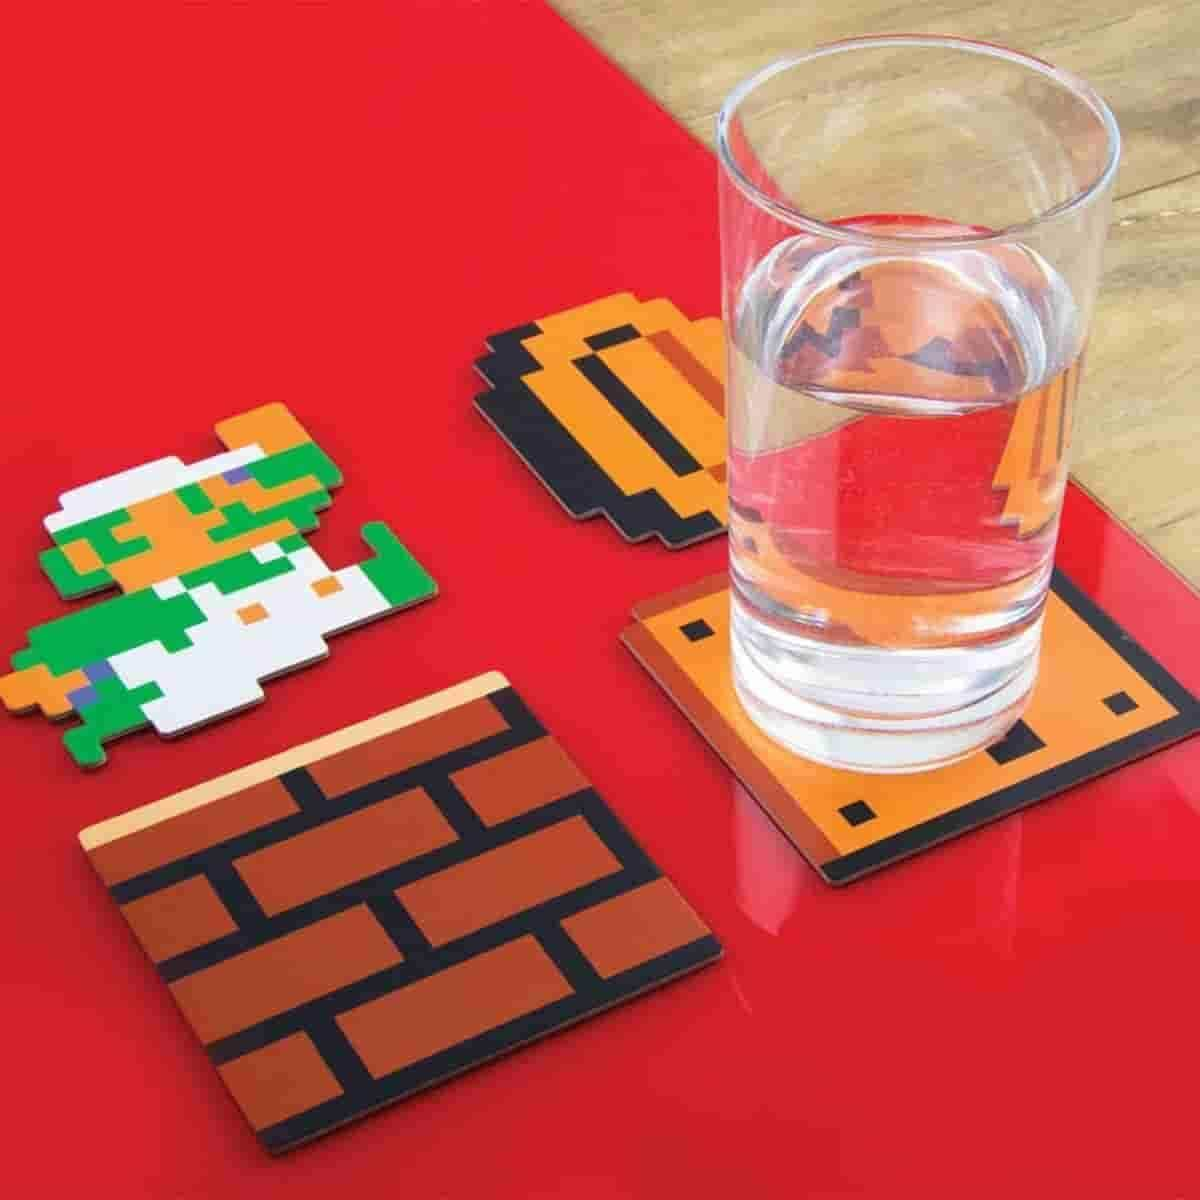 Nintendo NES Super Mario Bros. 8-bit Coaster Set of 20 Pieces - IamRetro.com